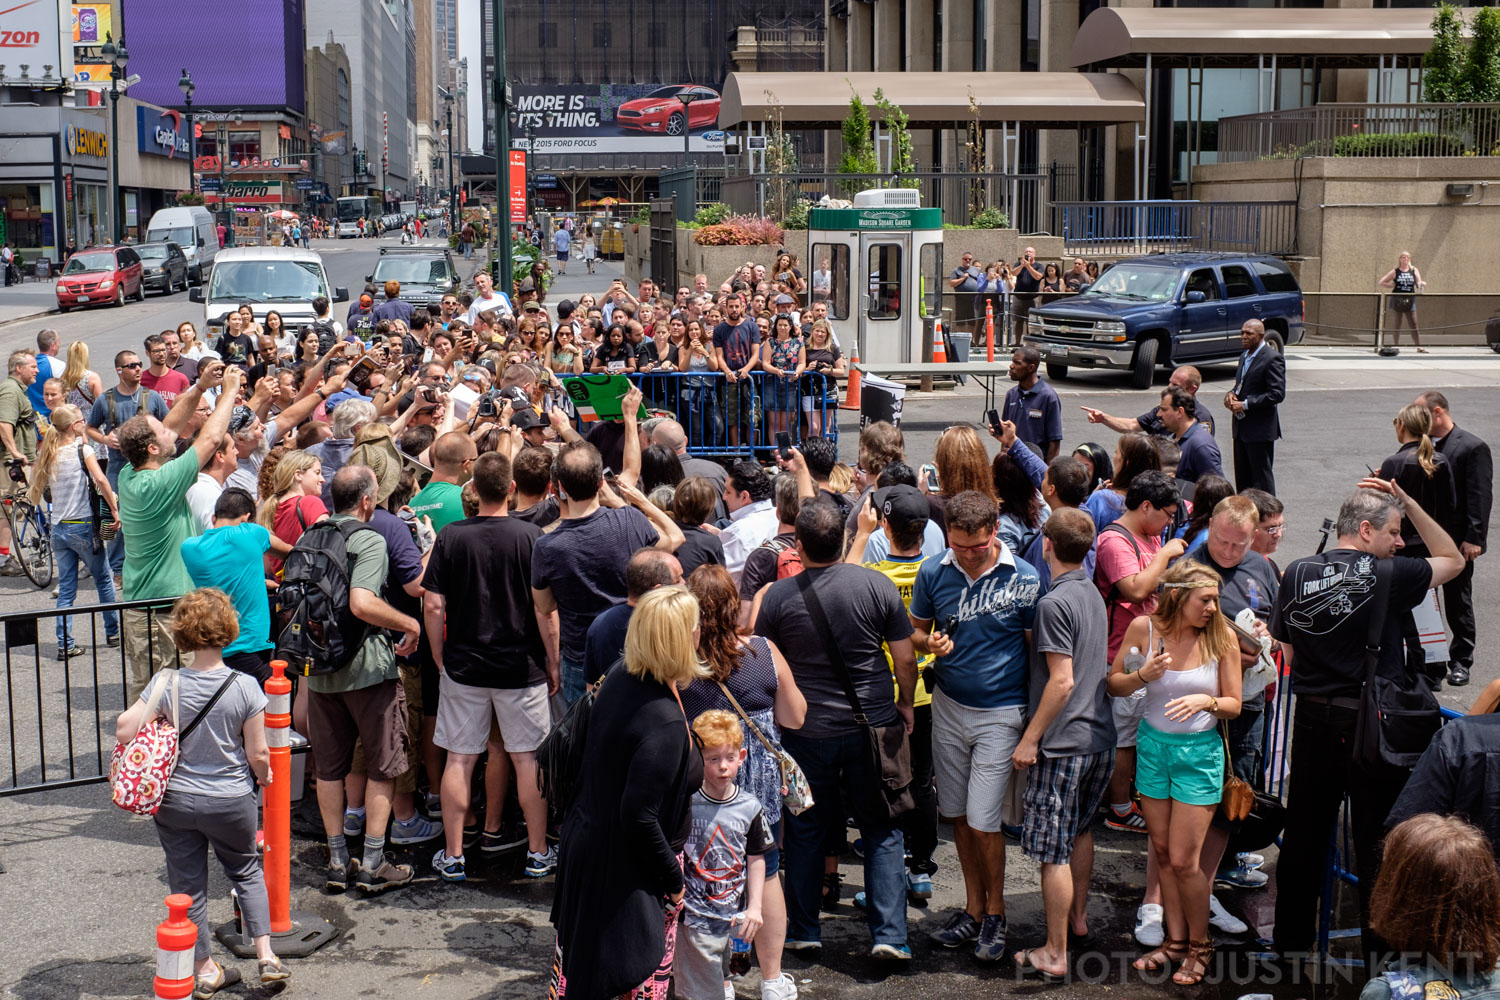 Autograph signing outside of MSG loading dock